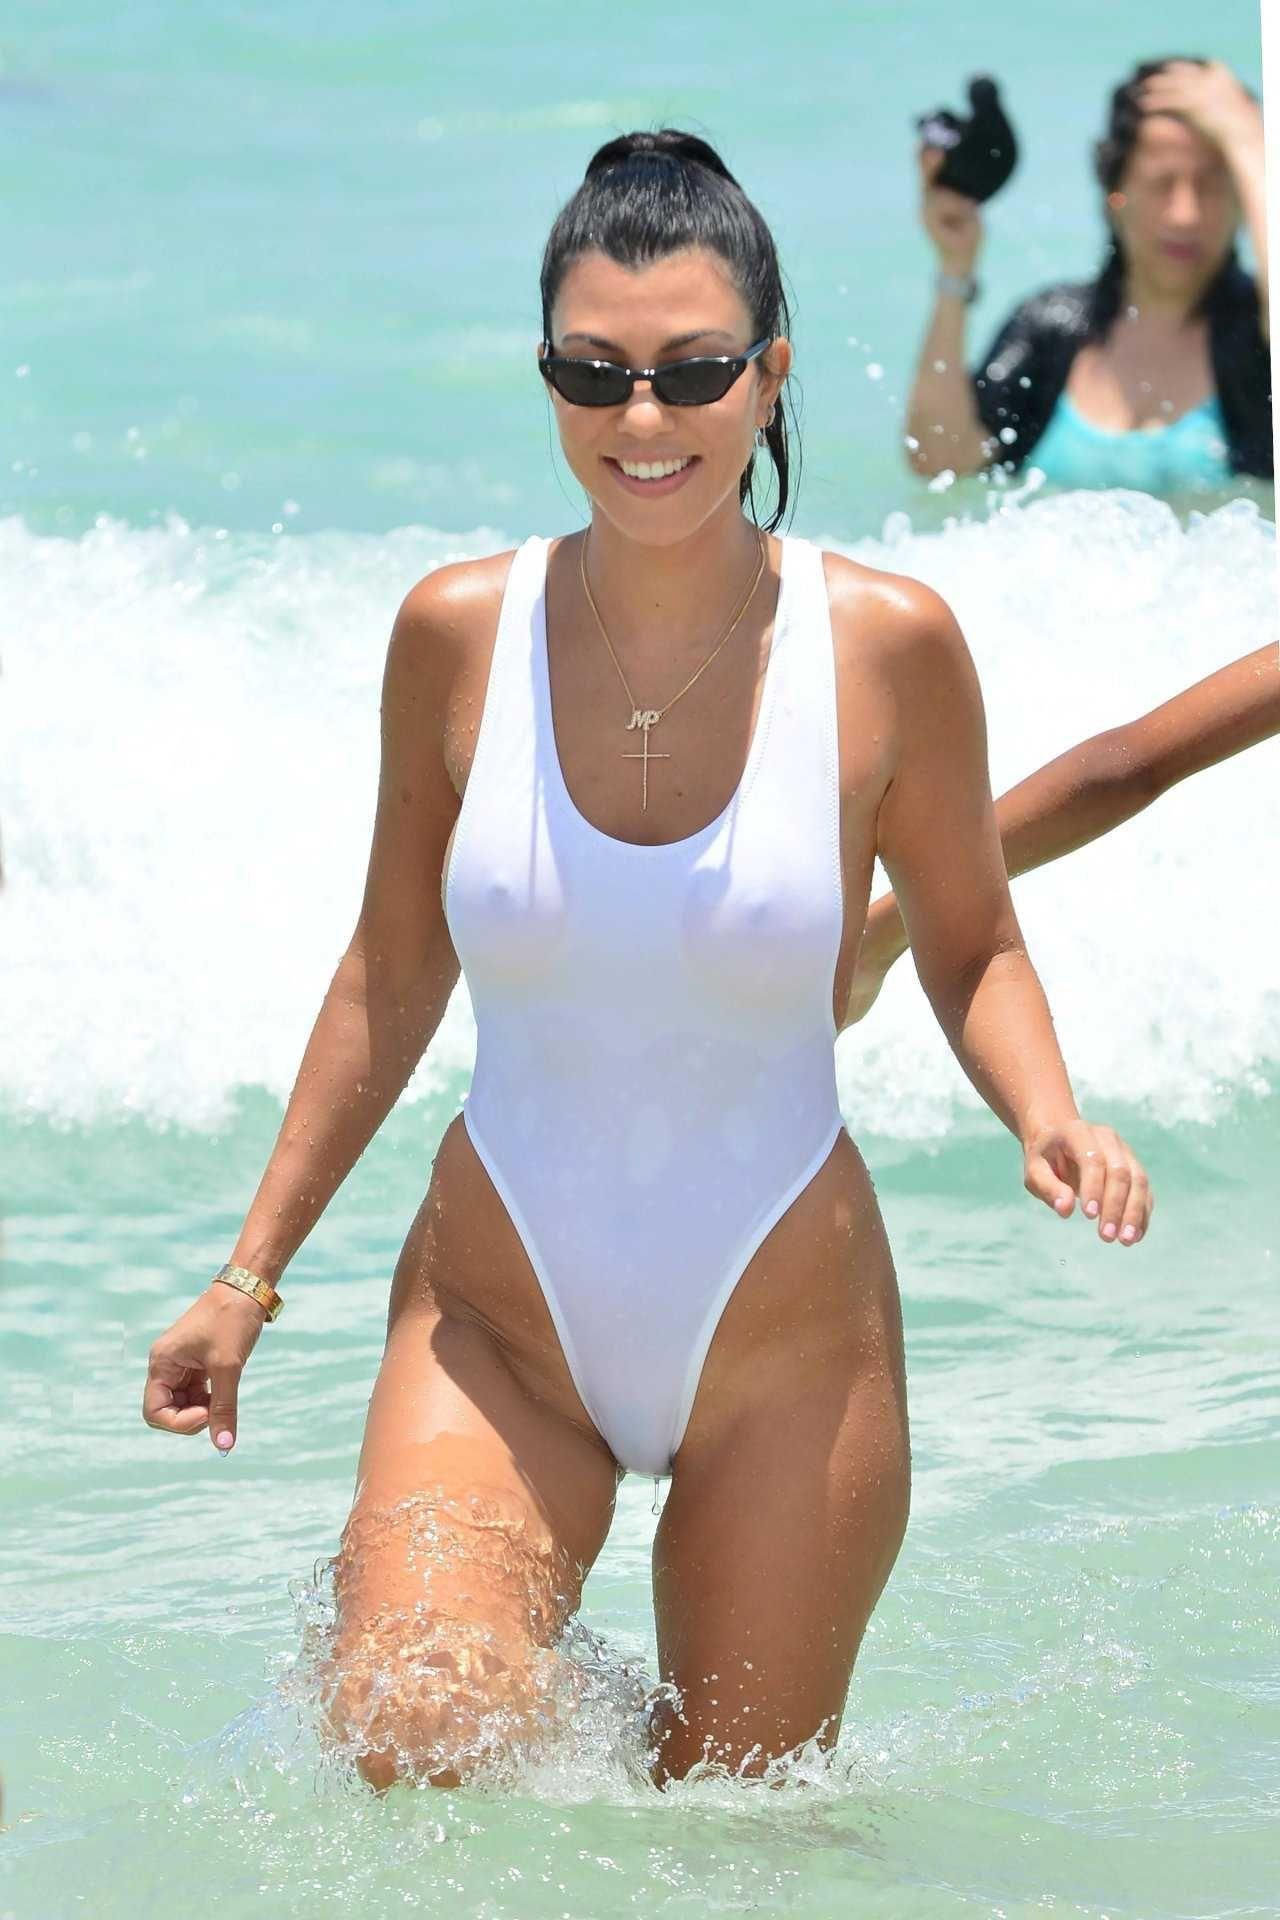 a5c1e0af897 Kourtney Kardashian White Swimsuit Candids in Miami Posted on Jun. 12th,  2017